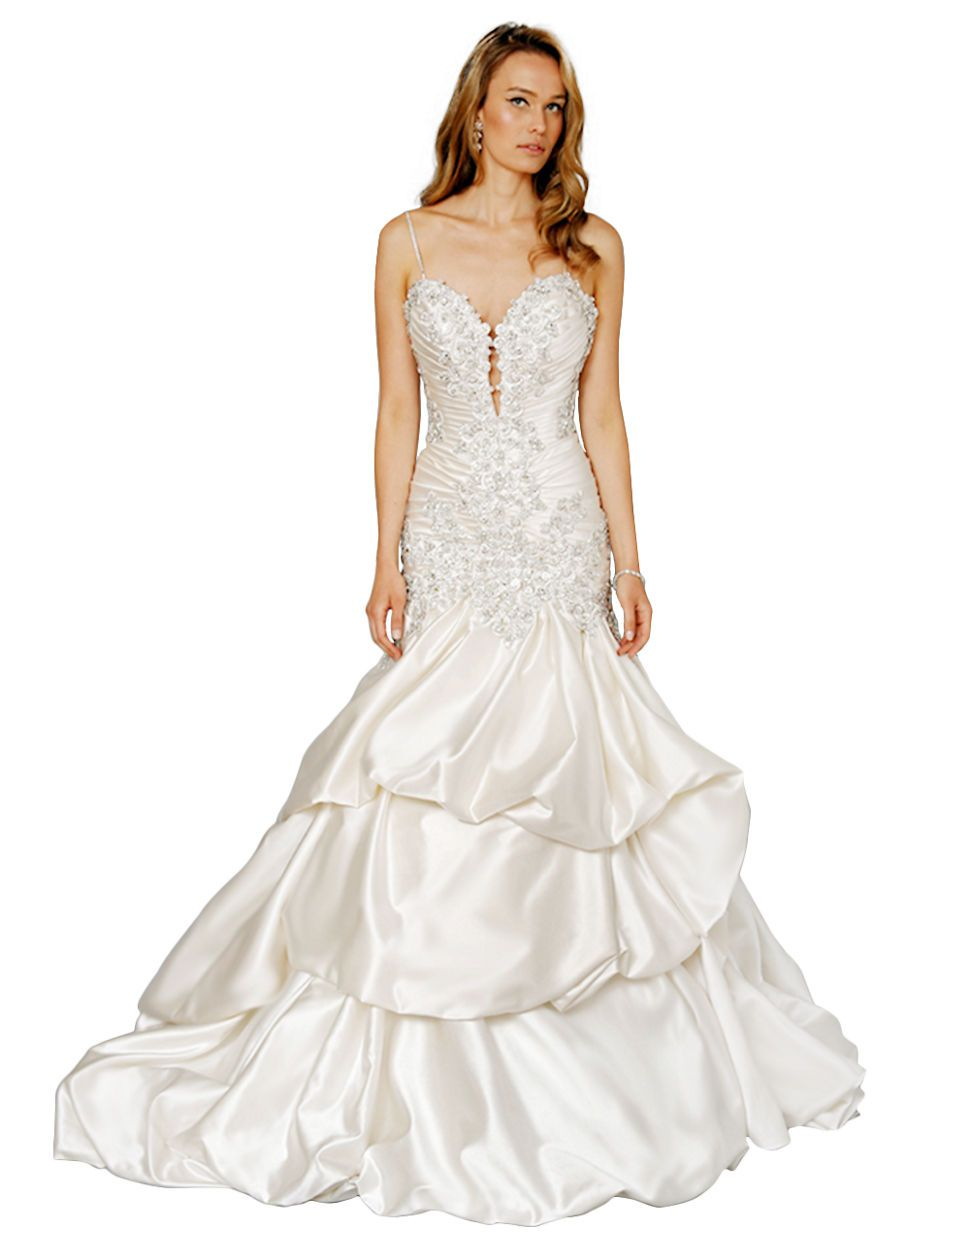 Sweetheart Mermaid Gown in Silk Charmeuse by Pnina Tornai | Hudson\'s ...